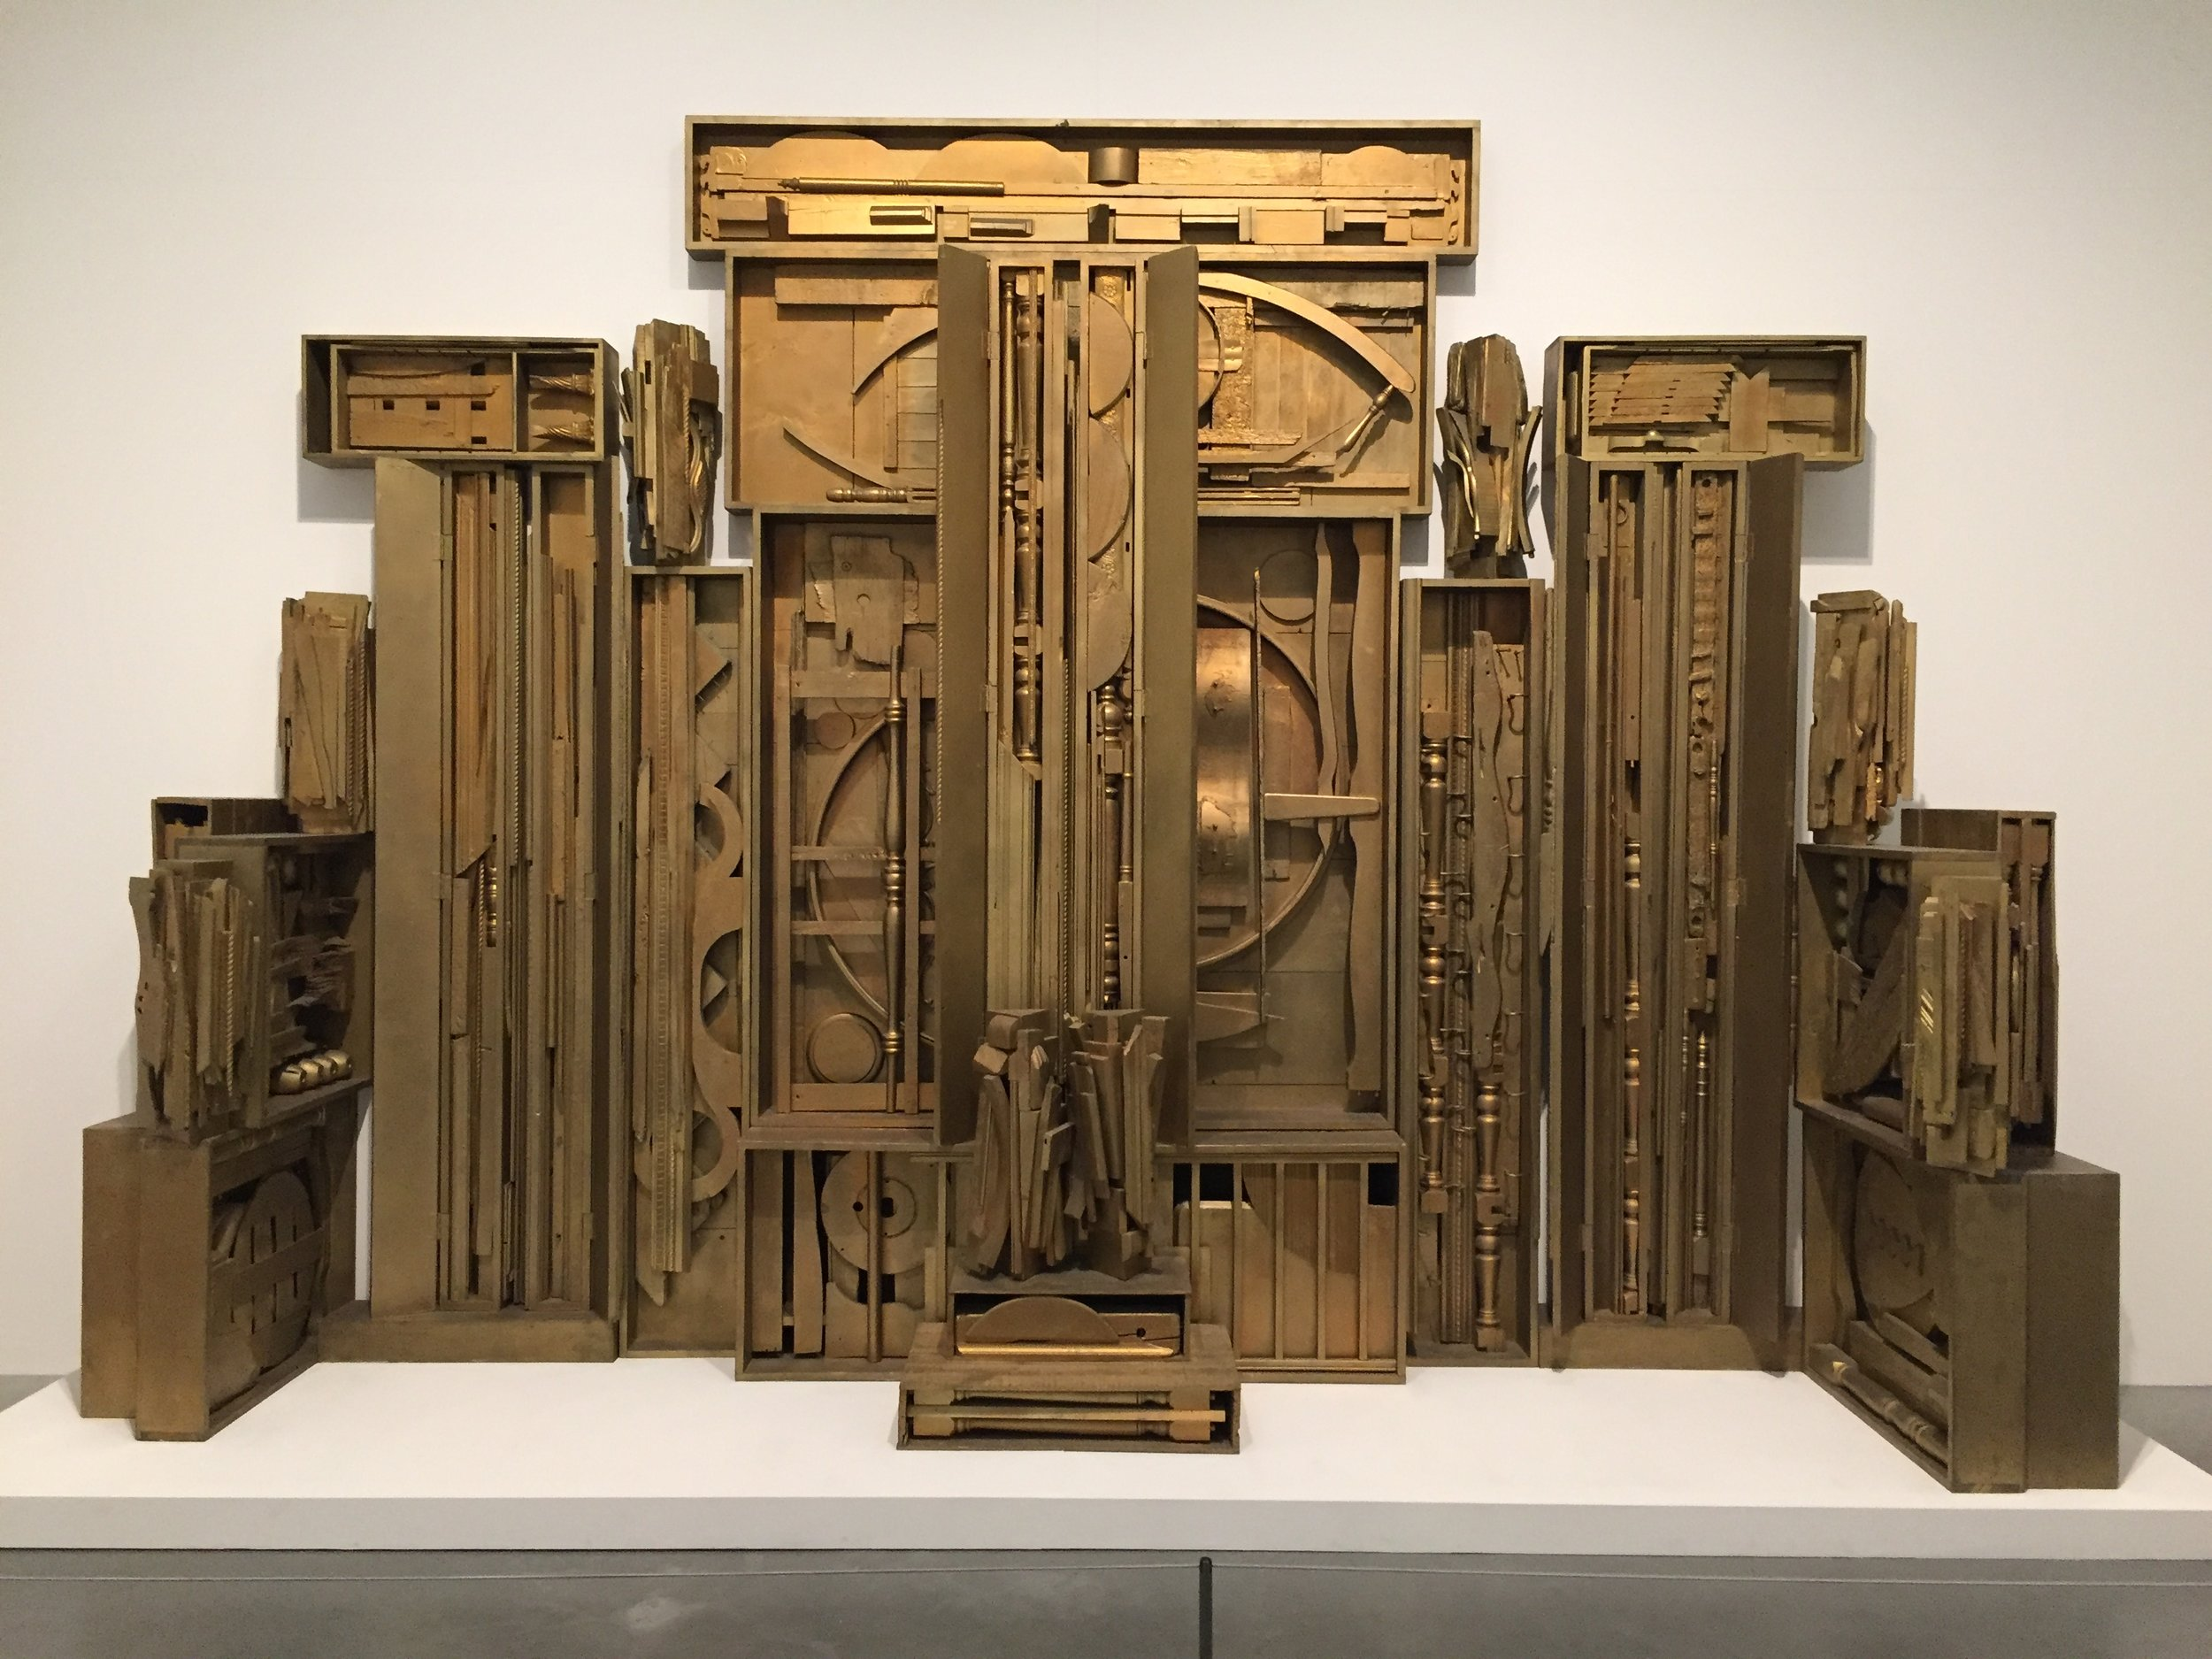 Louise Nevelson at the Tate Modern